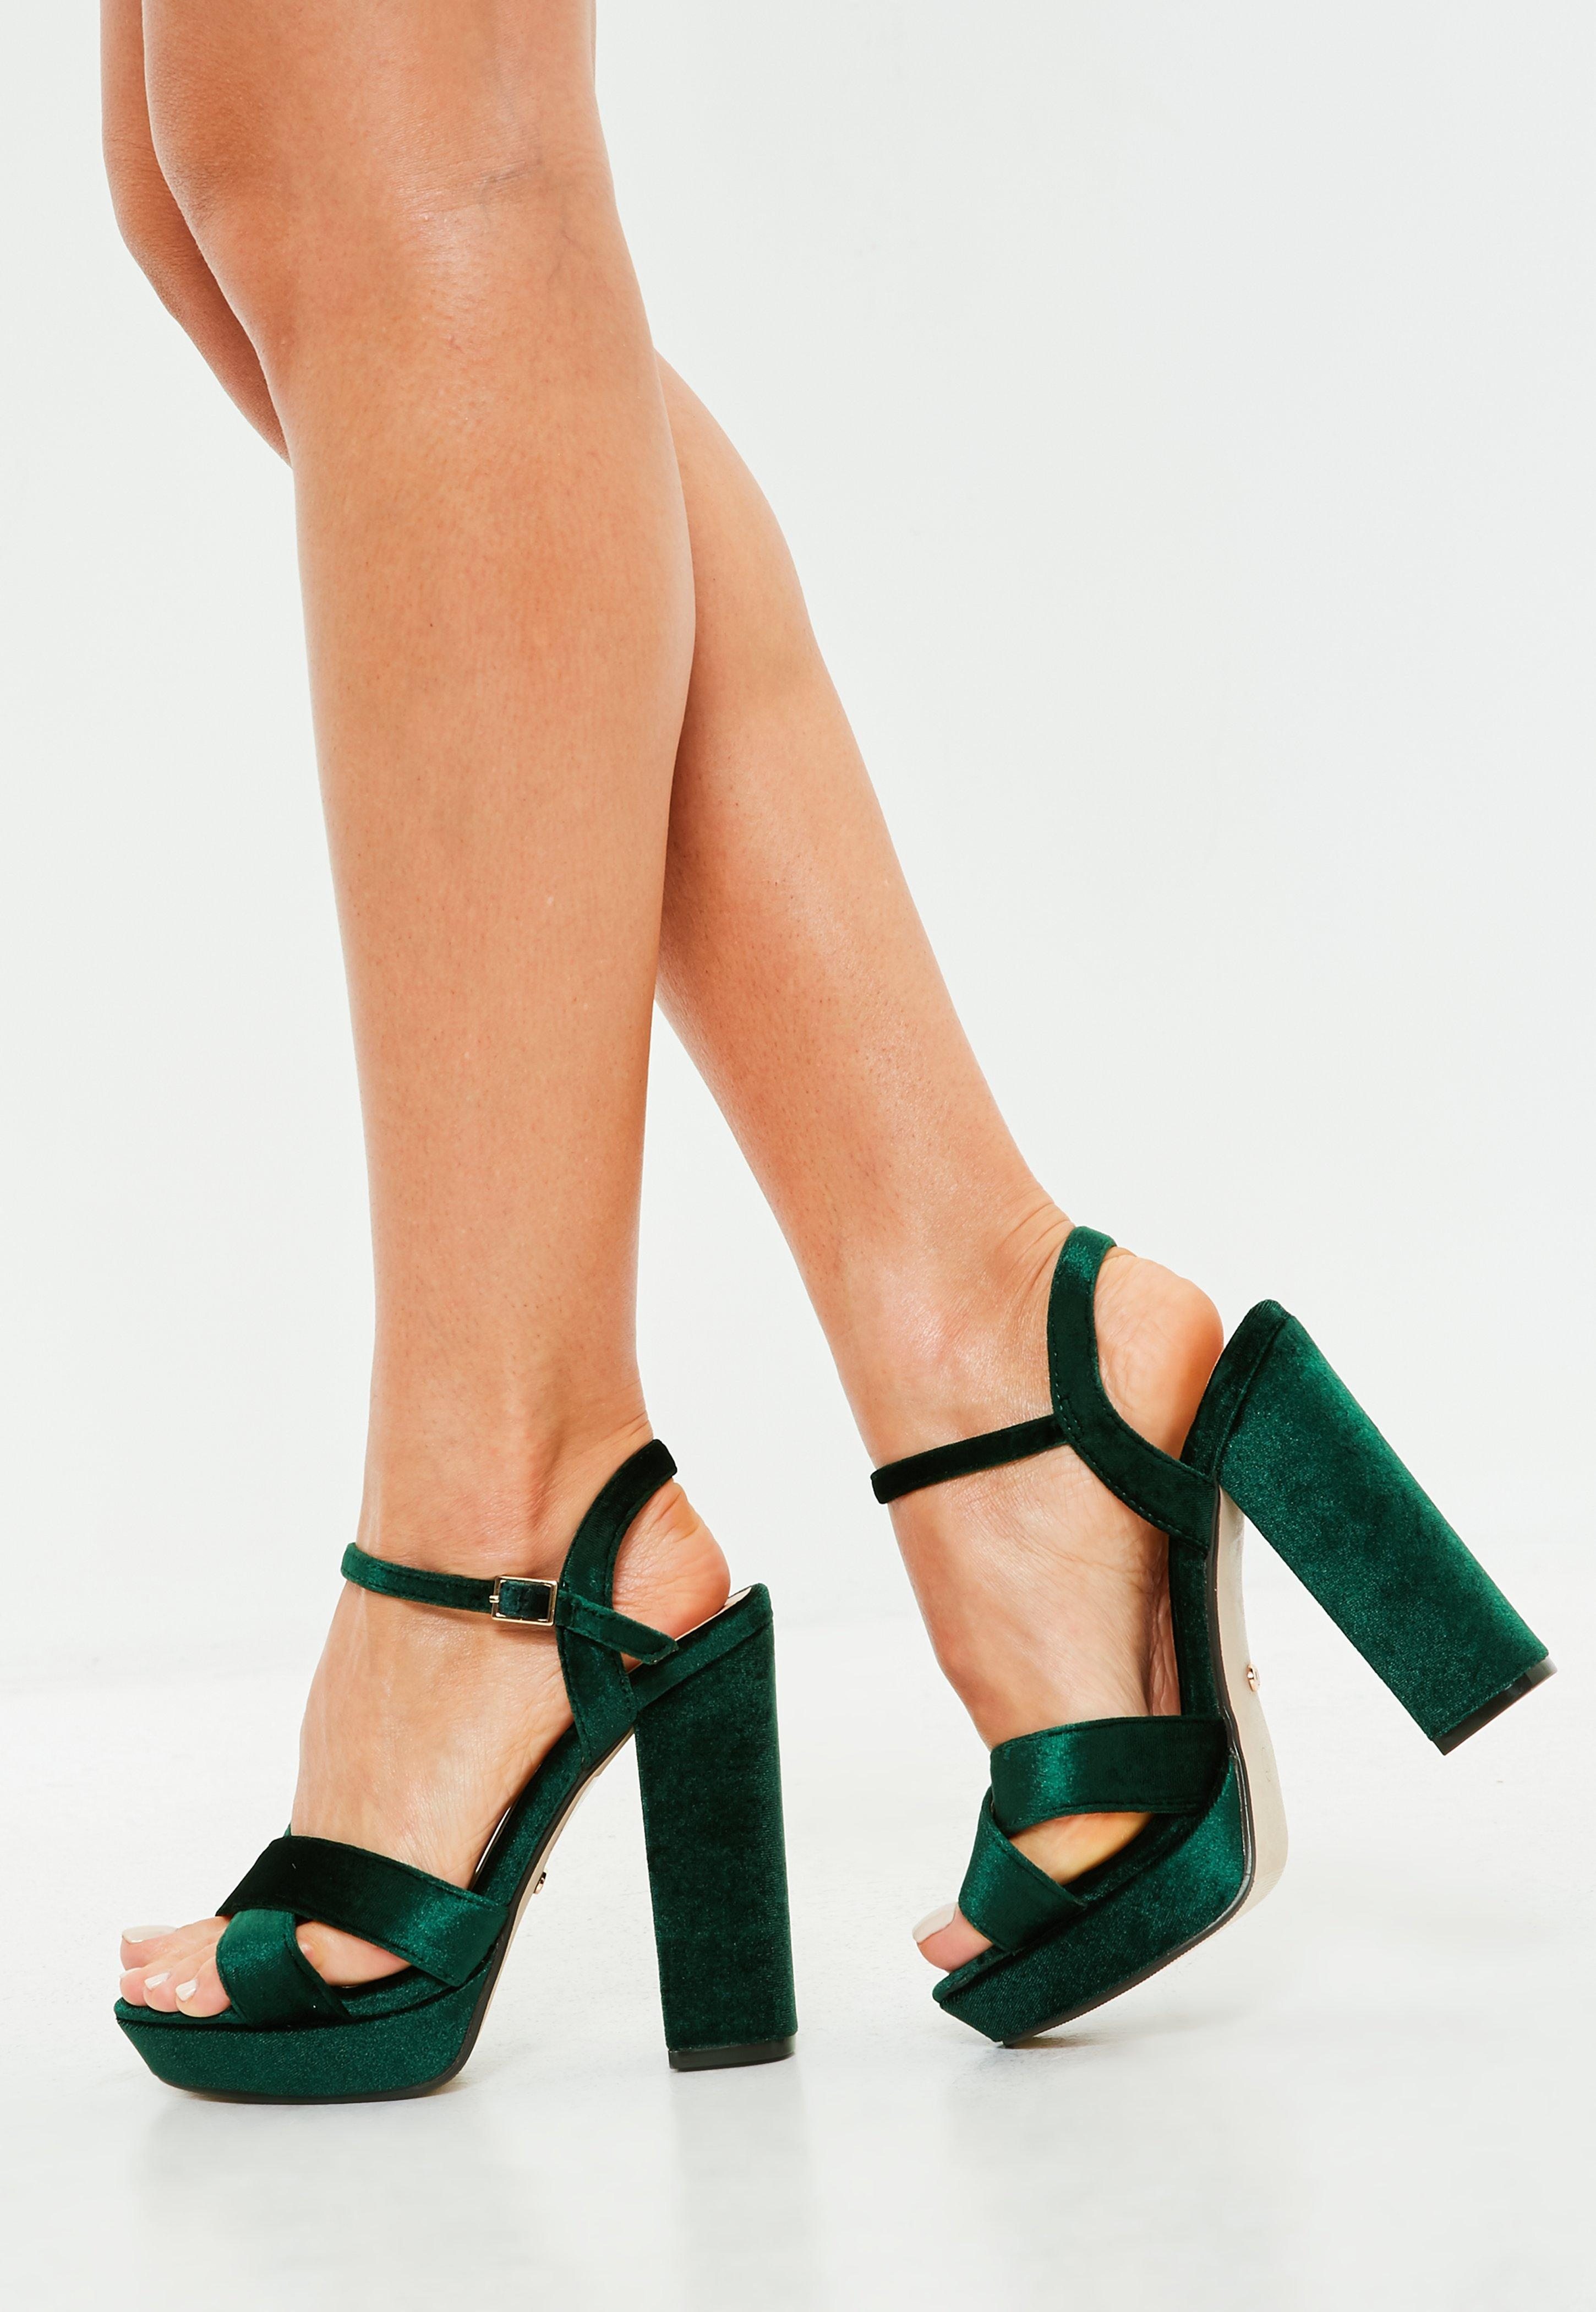 a77d3edf9fd Lyst - Missguided Green Velvet Cross Front Heeled Sandals in Green